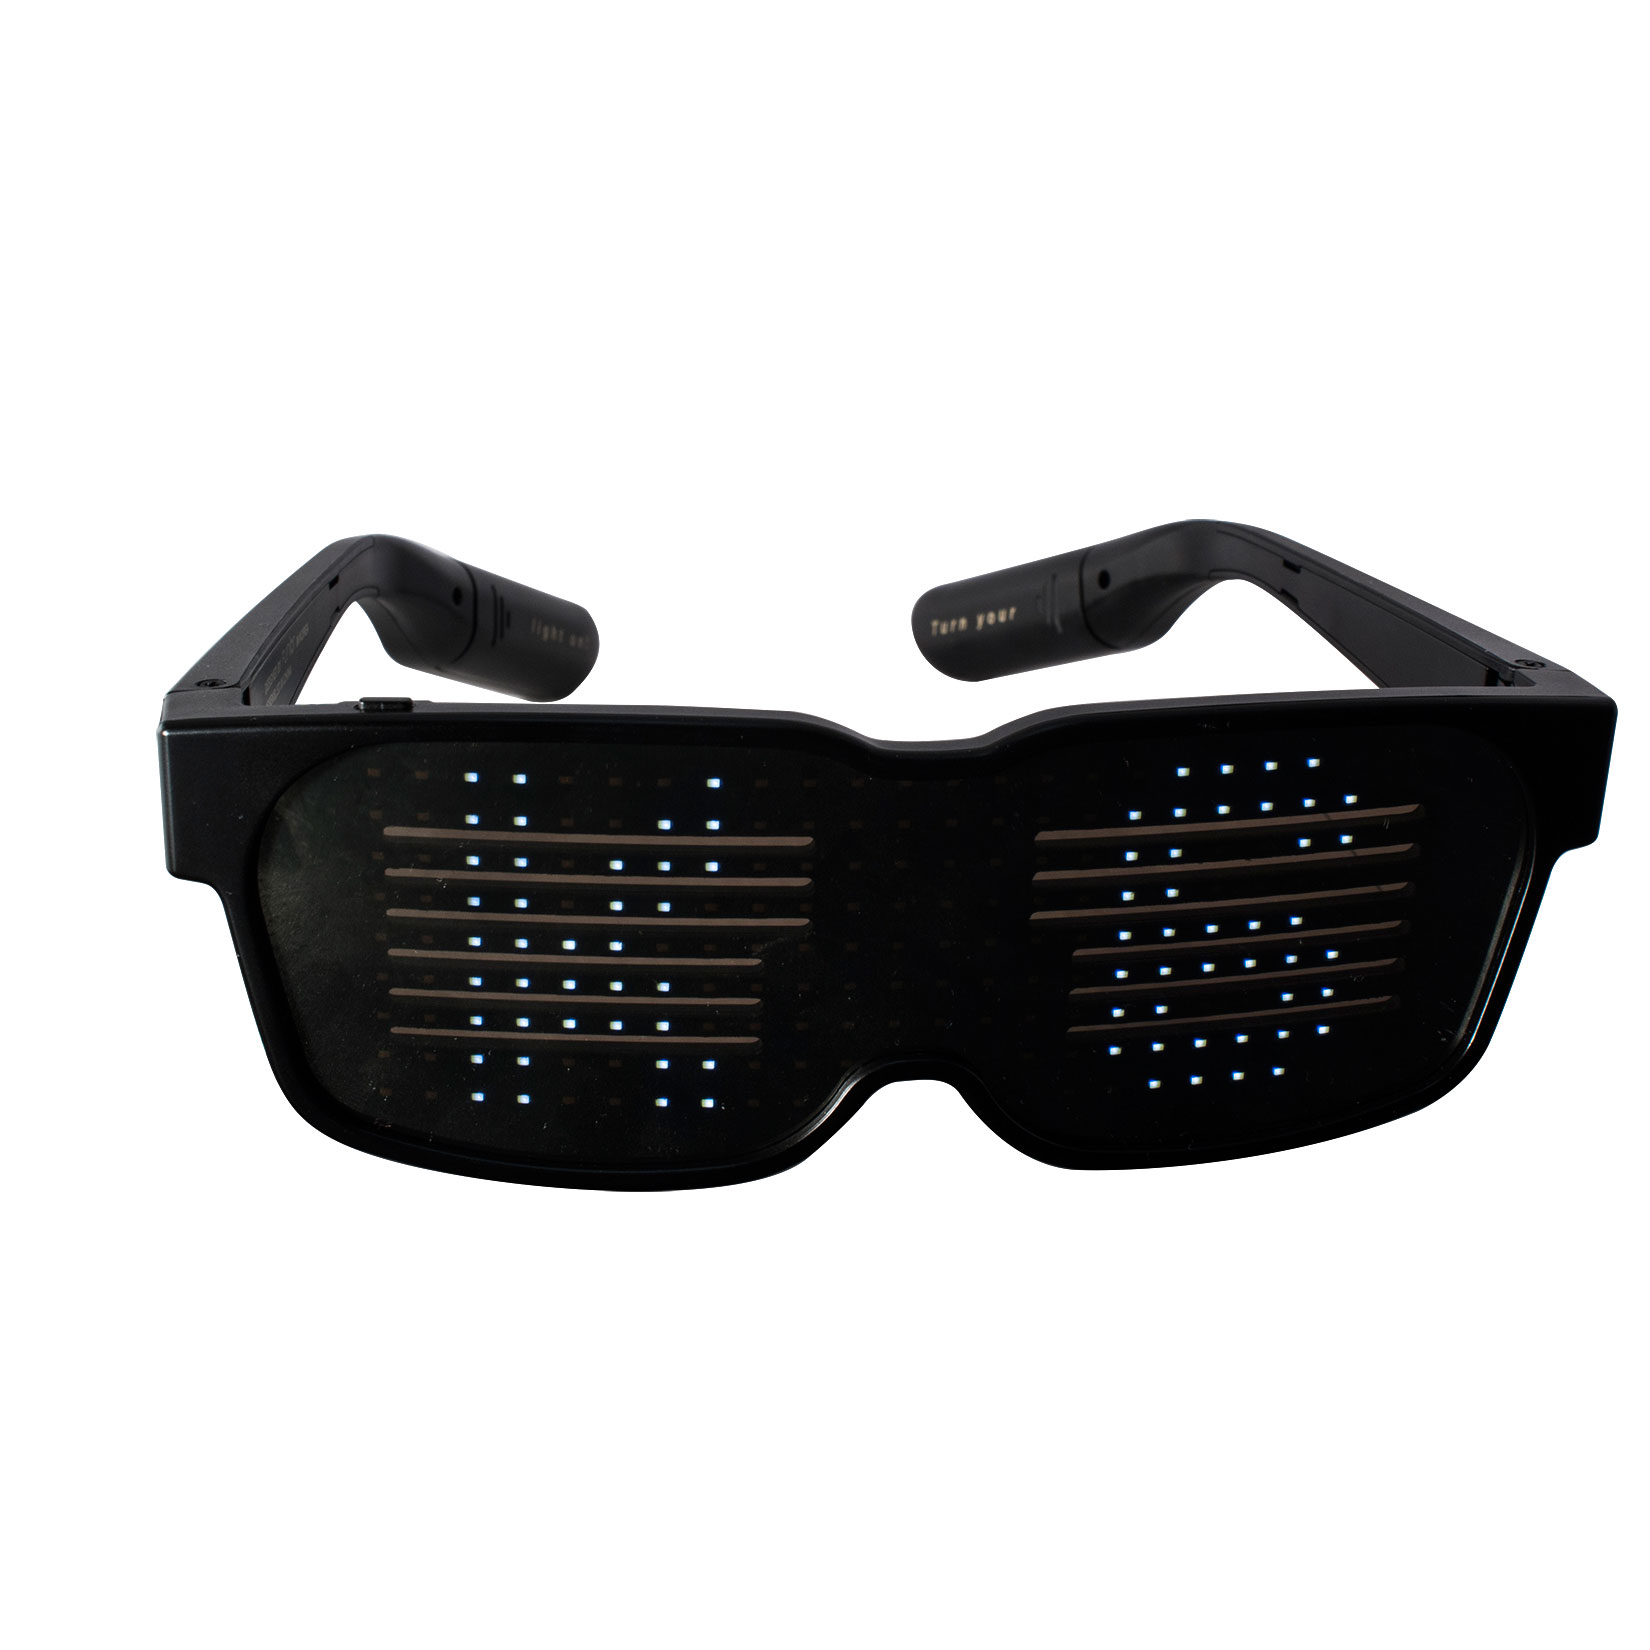 Ksix Pixi Glasses with LEDs: Customizable Bluetooth LED Glasses for Festivals, Fun, Nightclubs, Parties